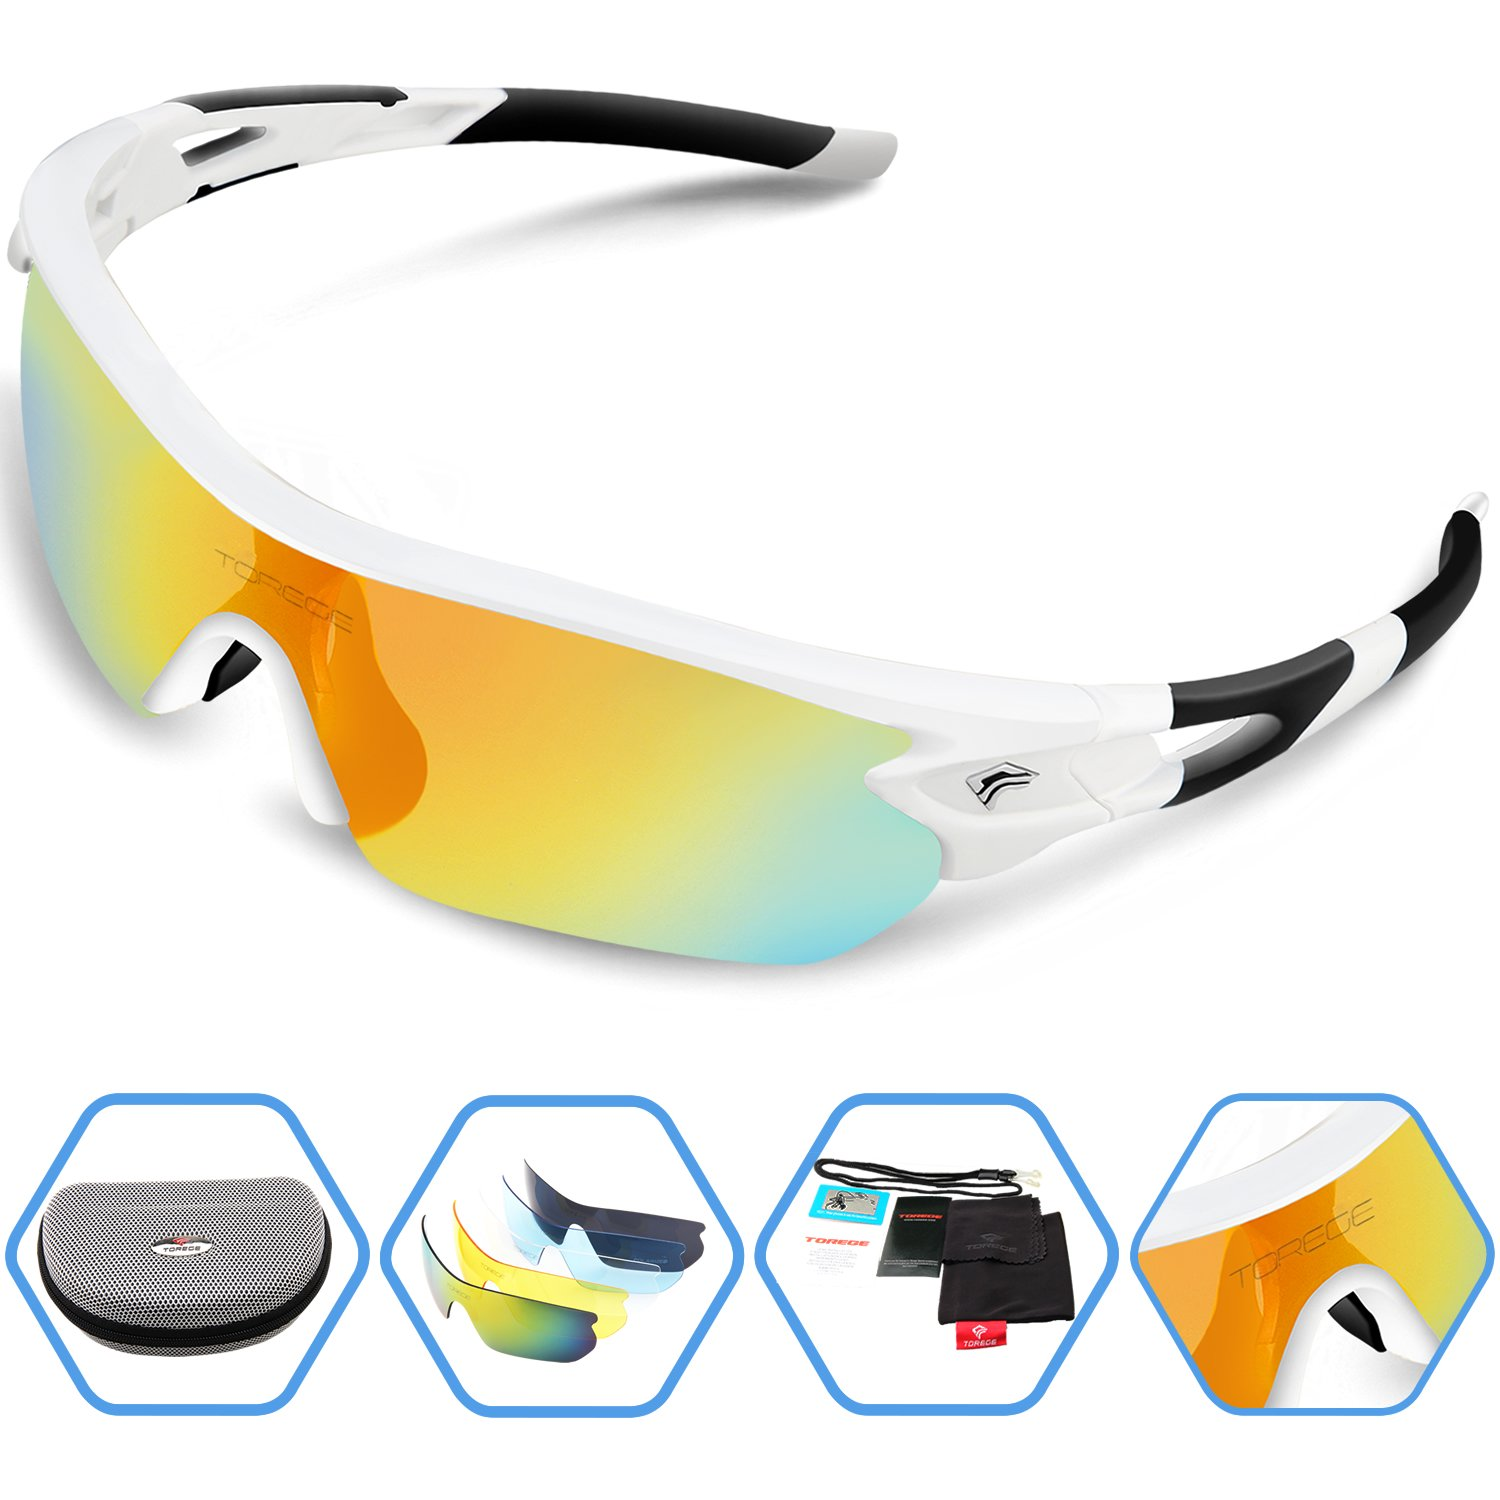 e9d8927084eeb TOREGE Polarized Sports Sunglasses with 5 Interchangeable Lenes for Men  Women Cycling Running Driving Fishing Golf Baseball Glasses TR002